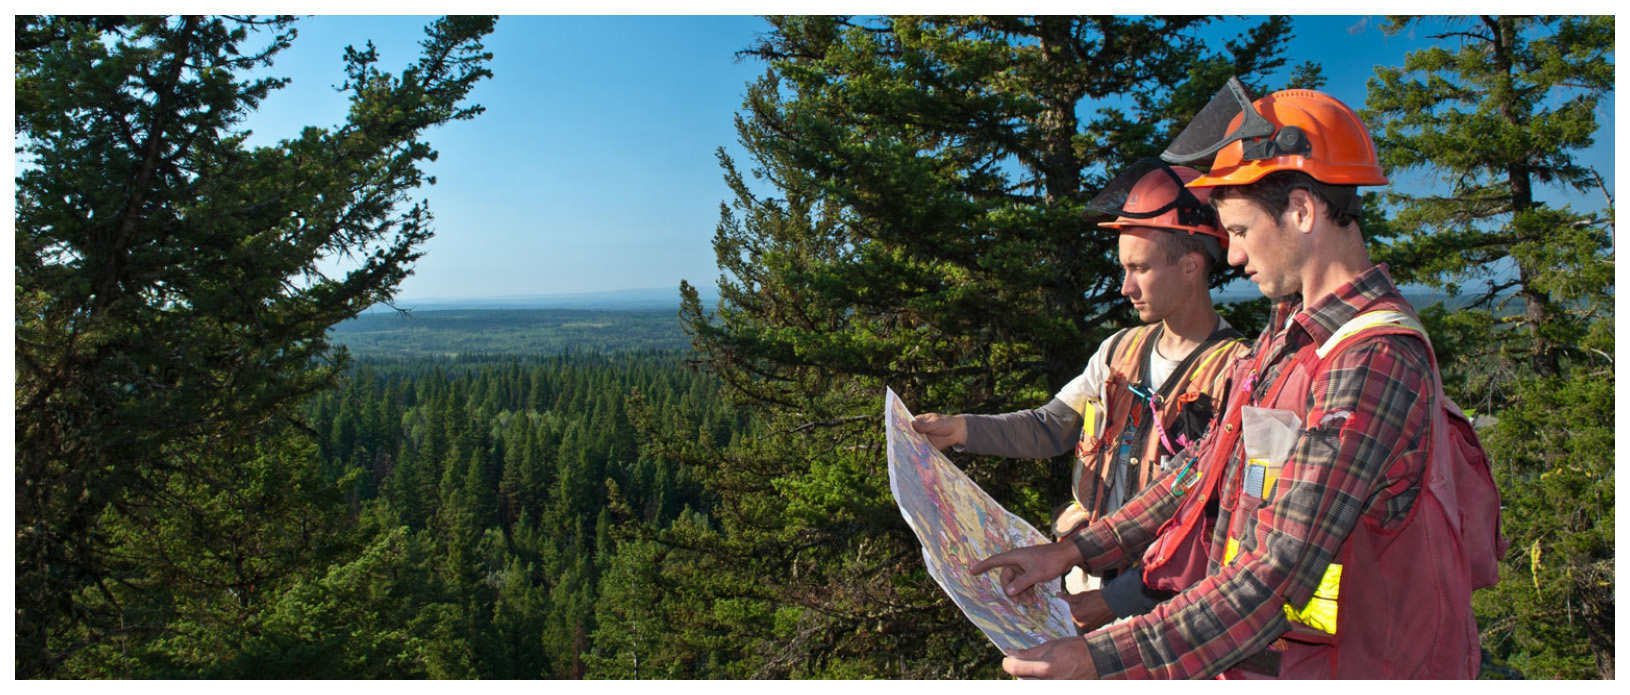 Contact Tree Doctors for a Forest Management Plan in Ontario